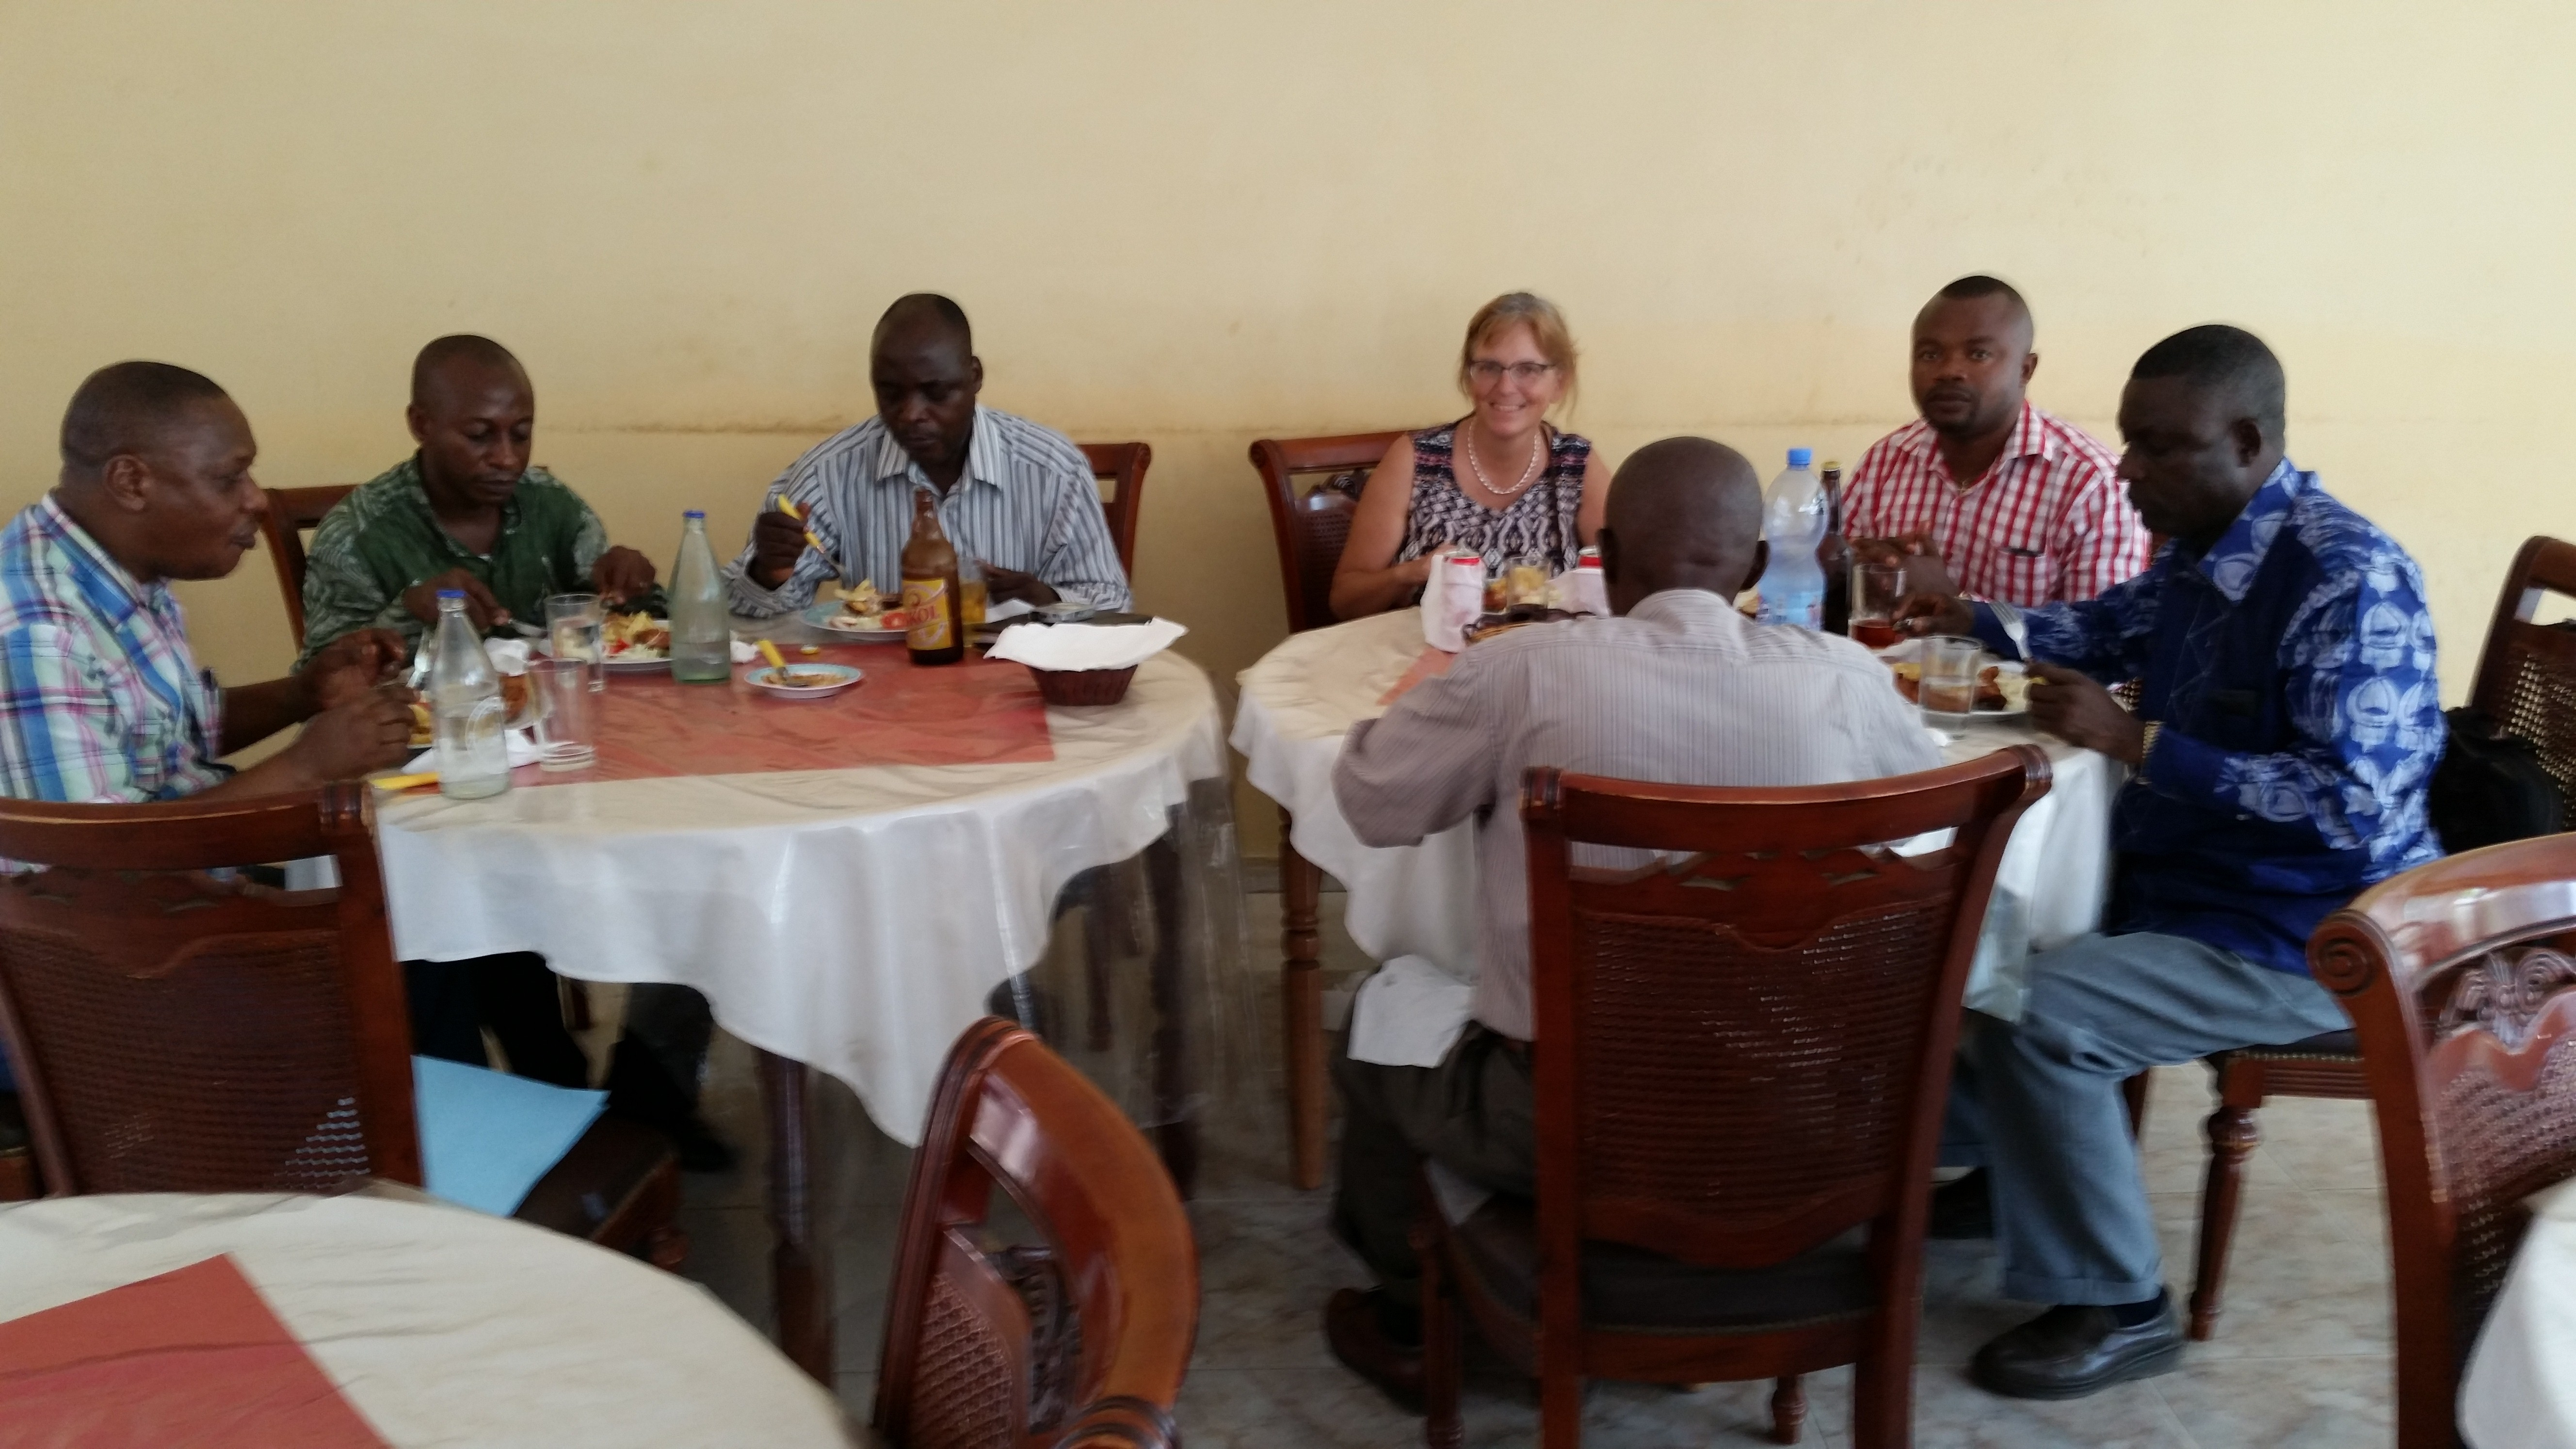 Lunch with colleagues in DRC